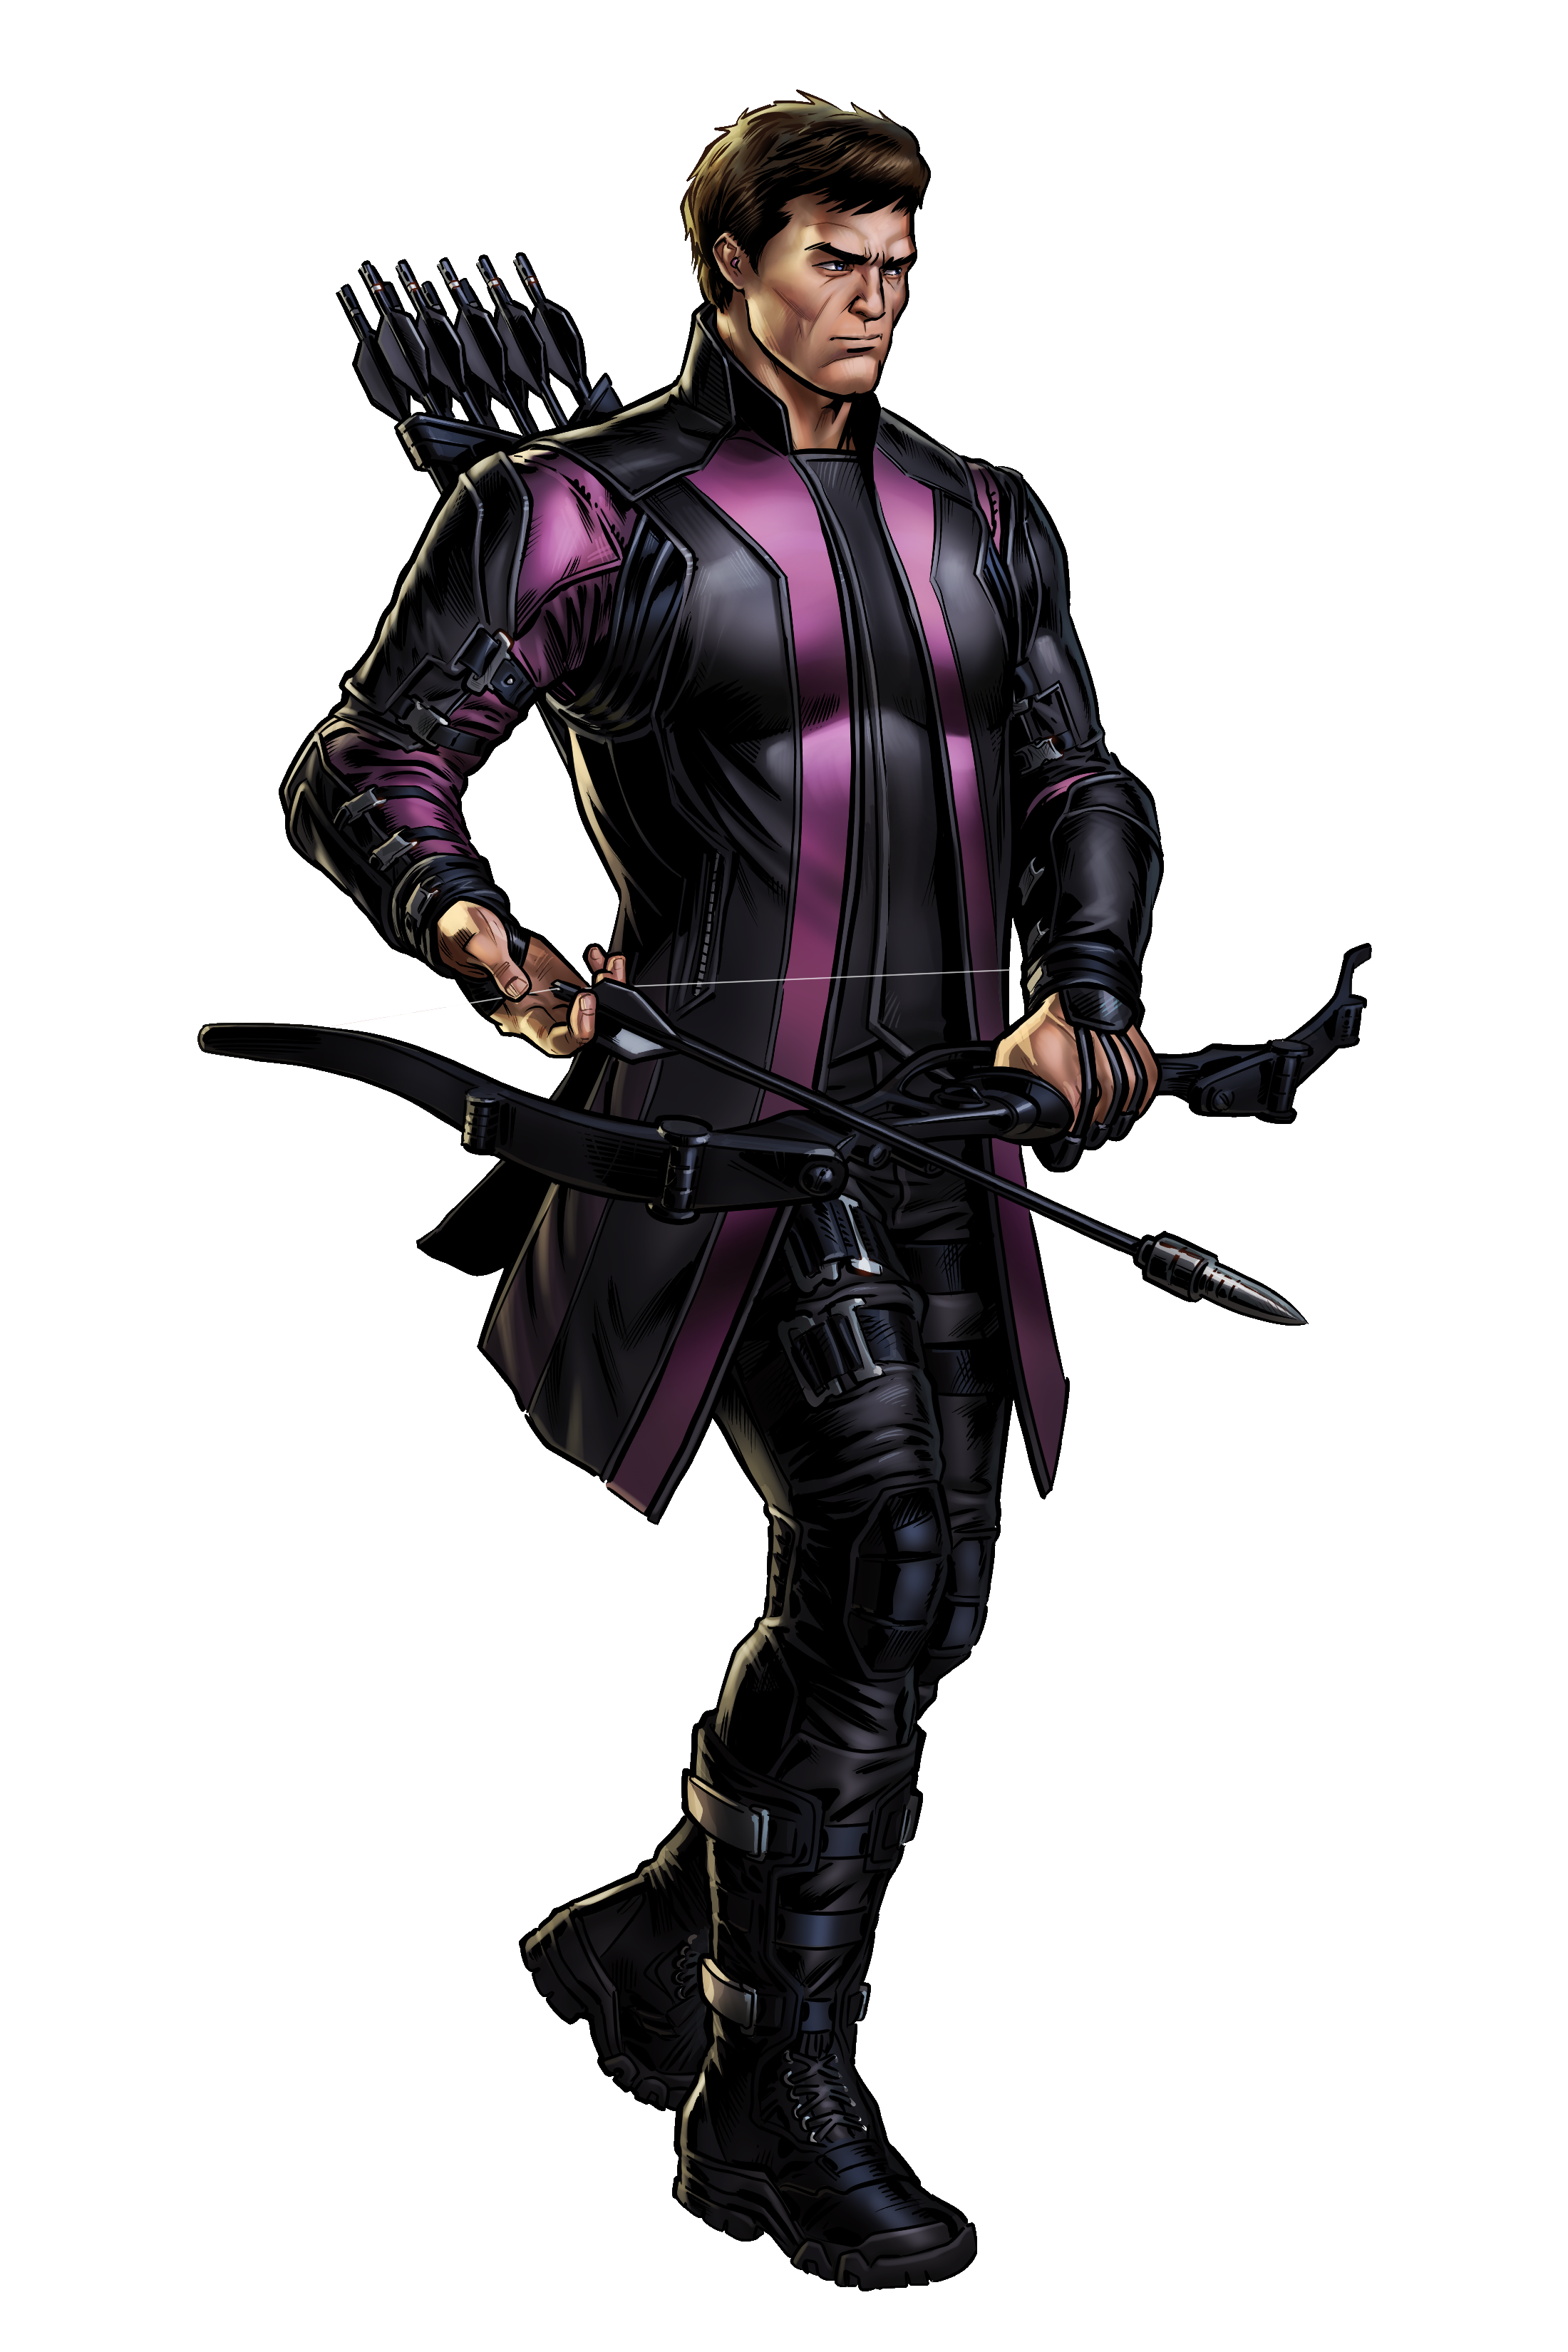 marvel avengers alliance 2 hawkeye by steeven7620 on deviantart. Black Bedroom Furniture Sets. Home Design Ideas